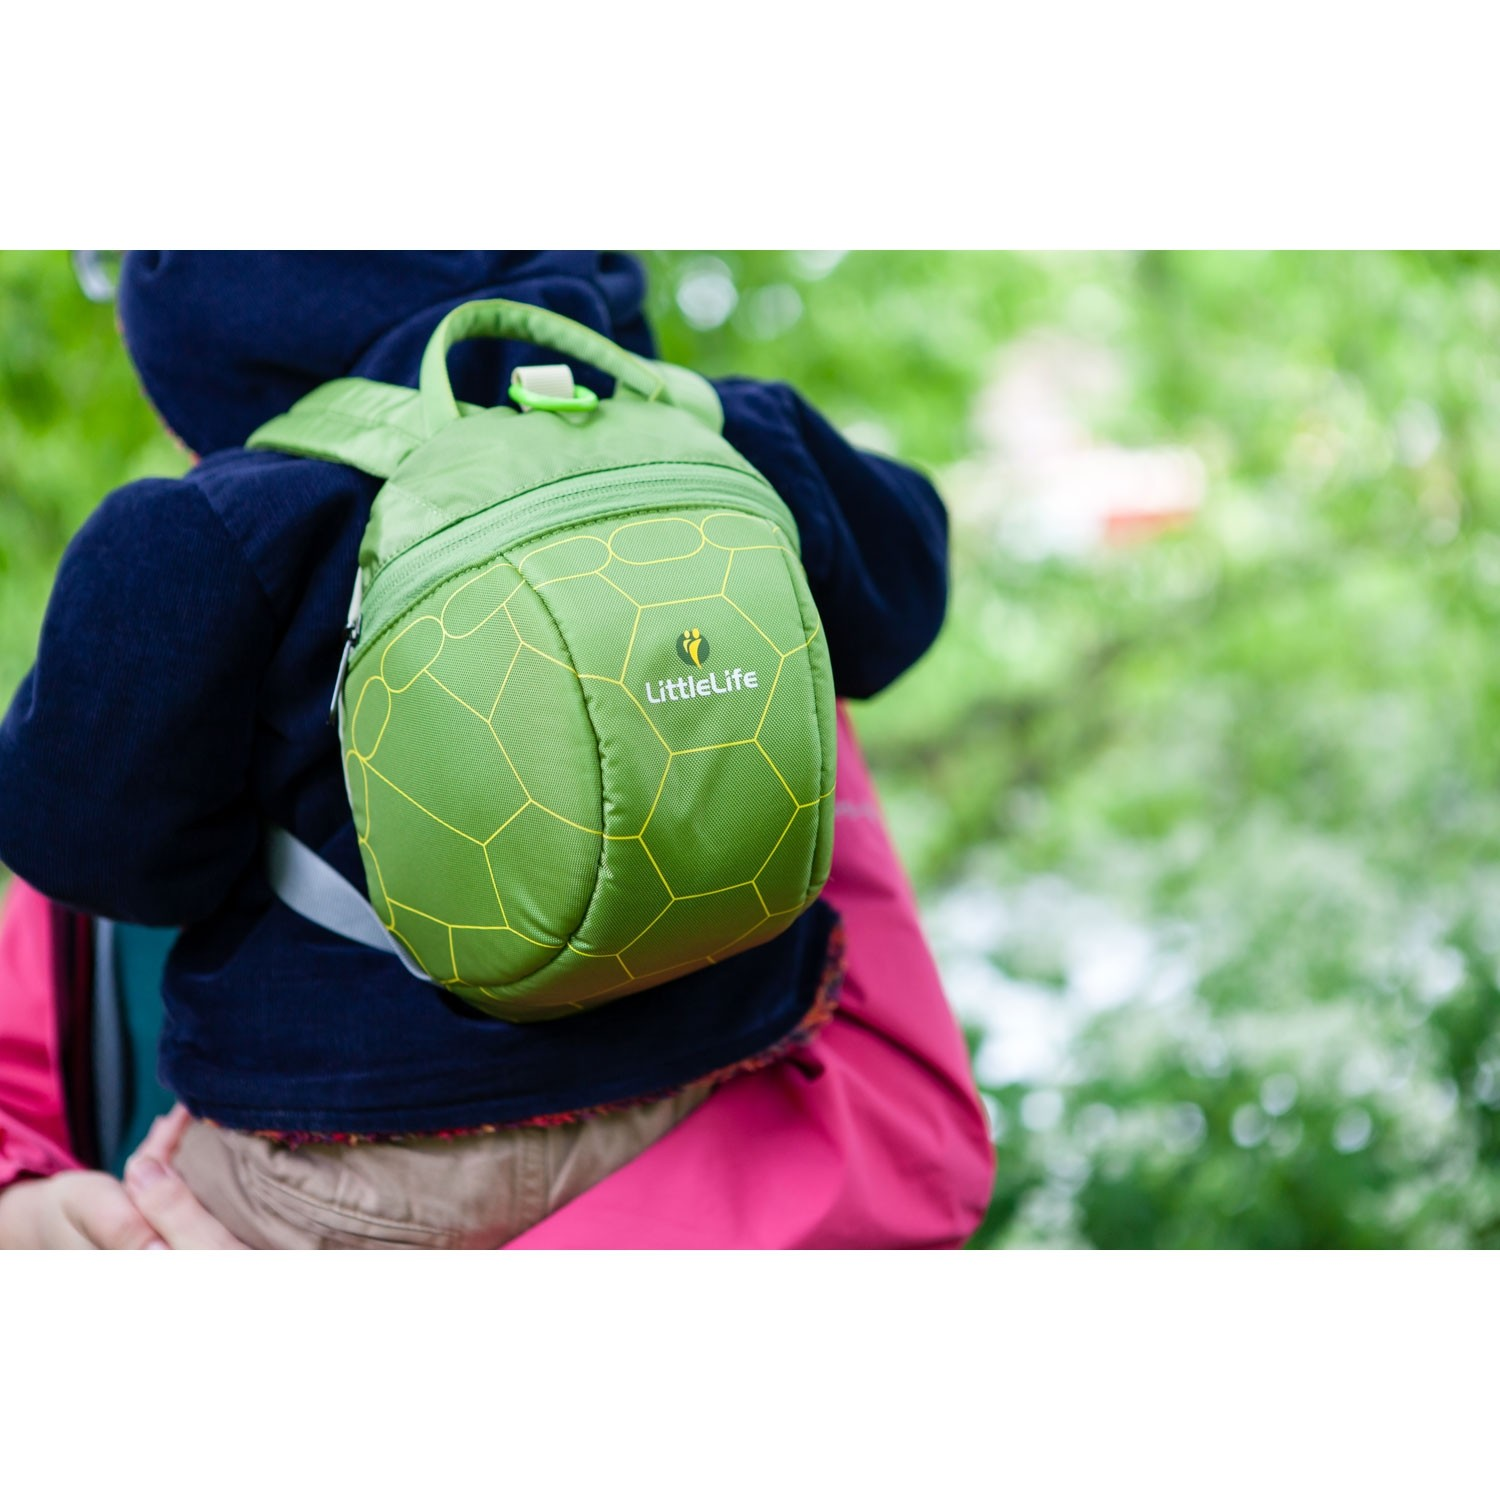 LITTLELIFE - Toddler's Animal Rucksack - Turtle